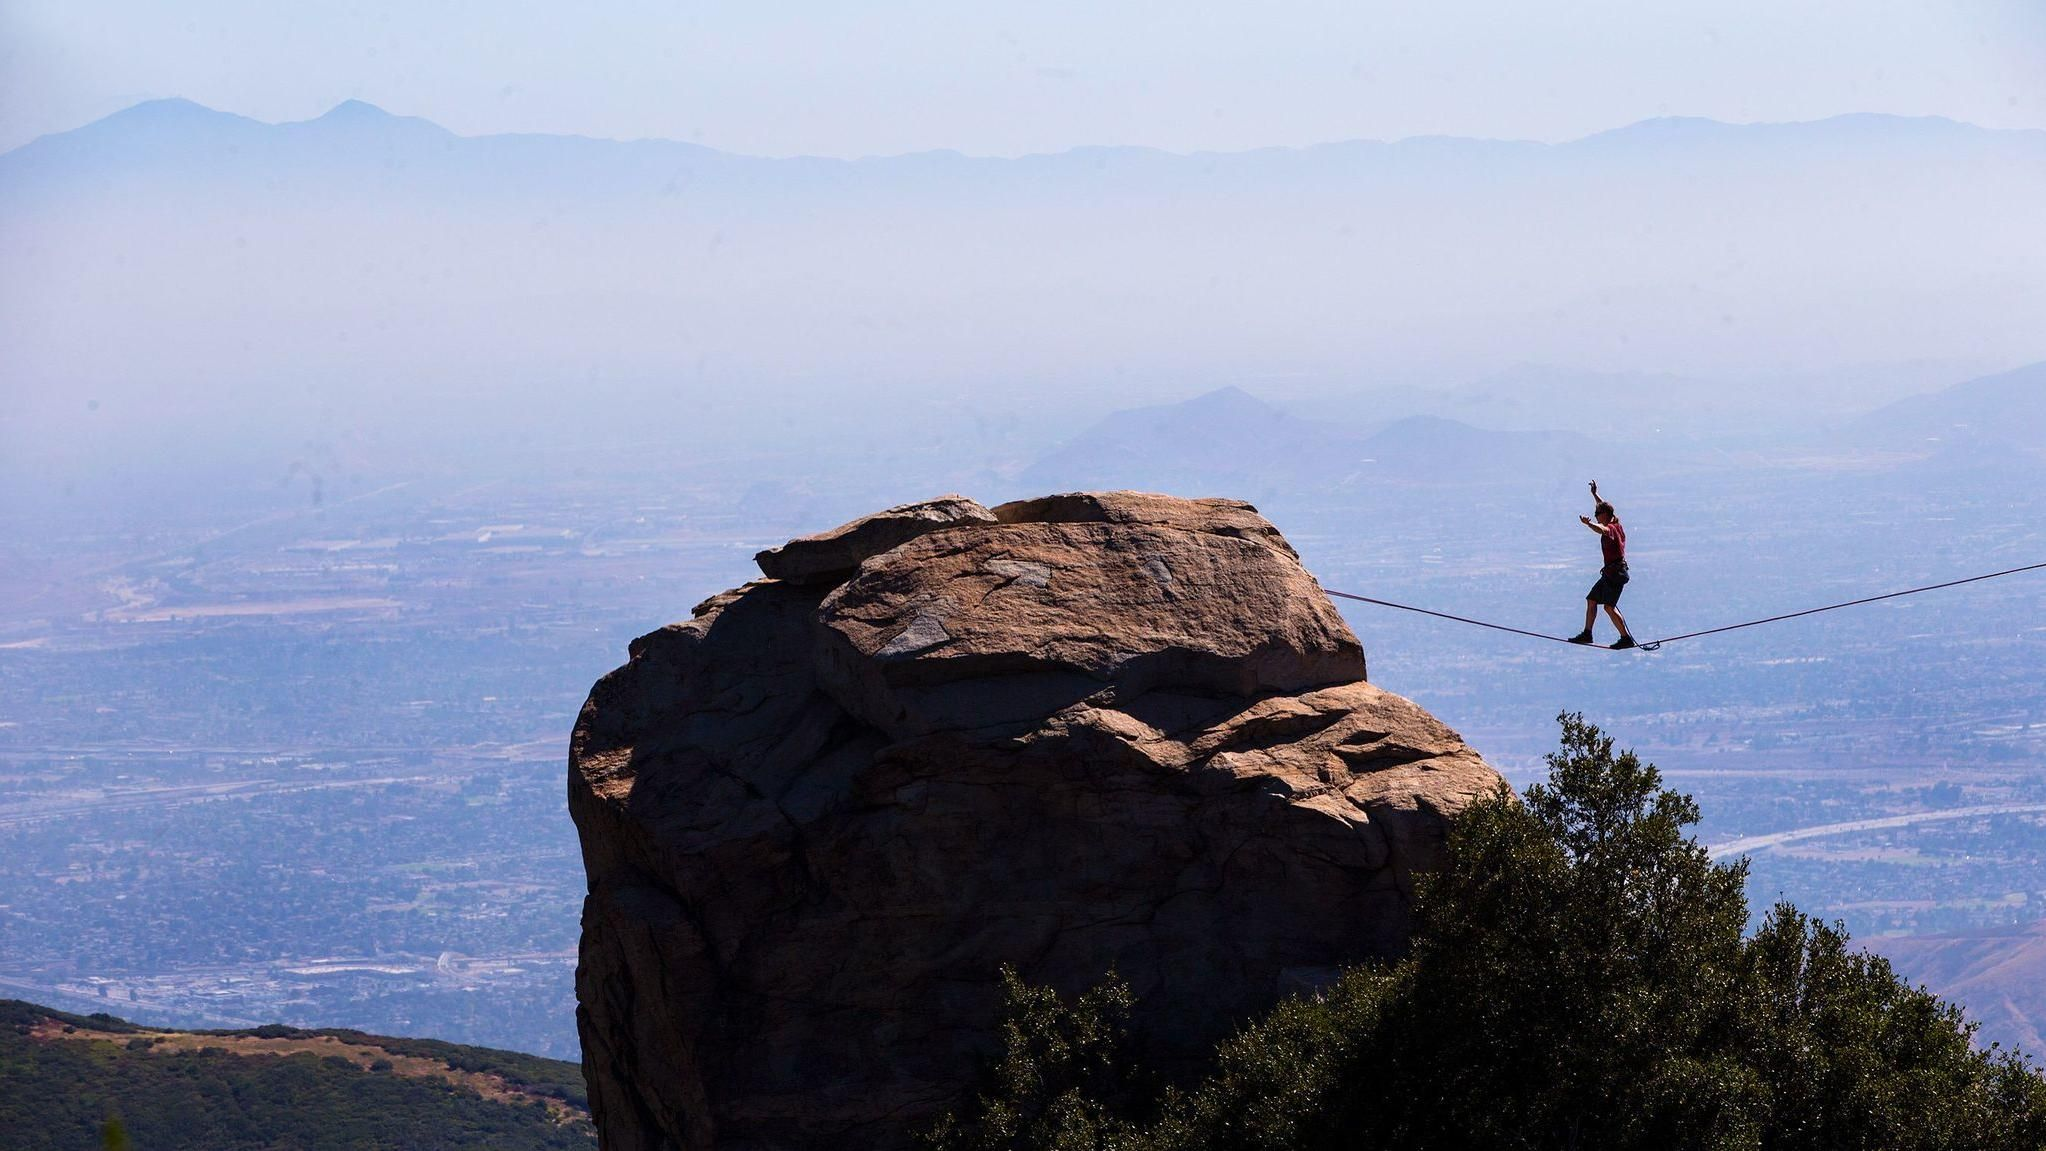 Southern california smog worsens for second straight year